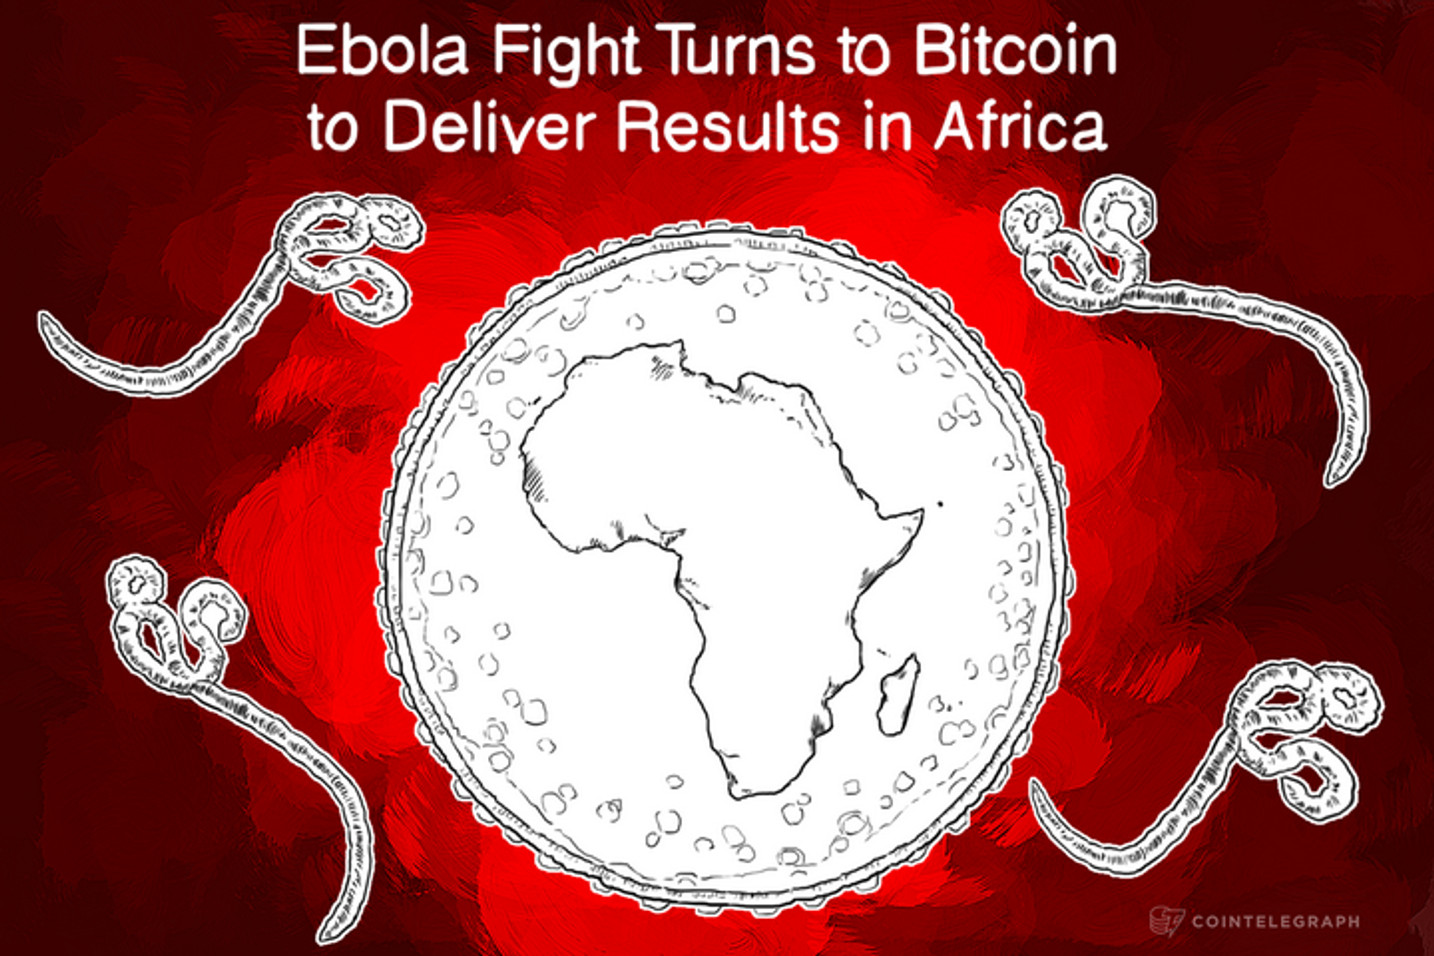 Ebola Fight Turns to Bitcoin to Deliver Results in Africa